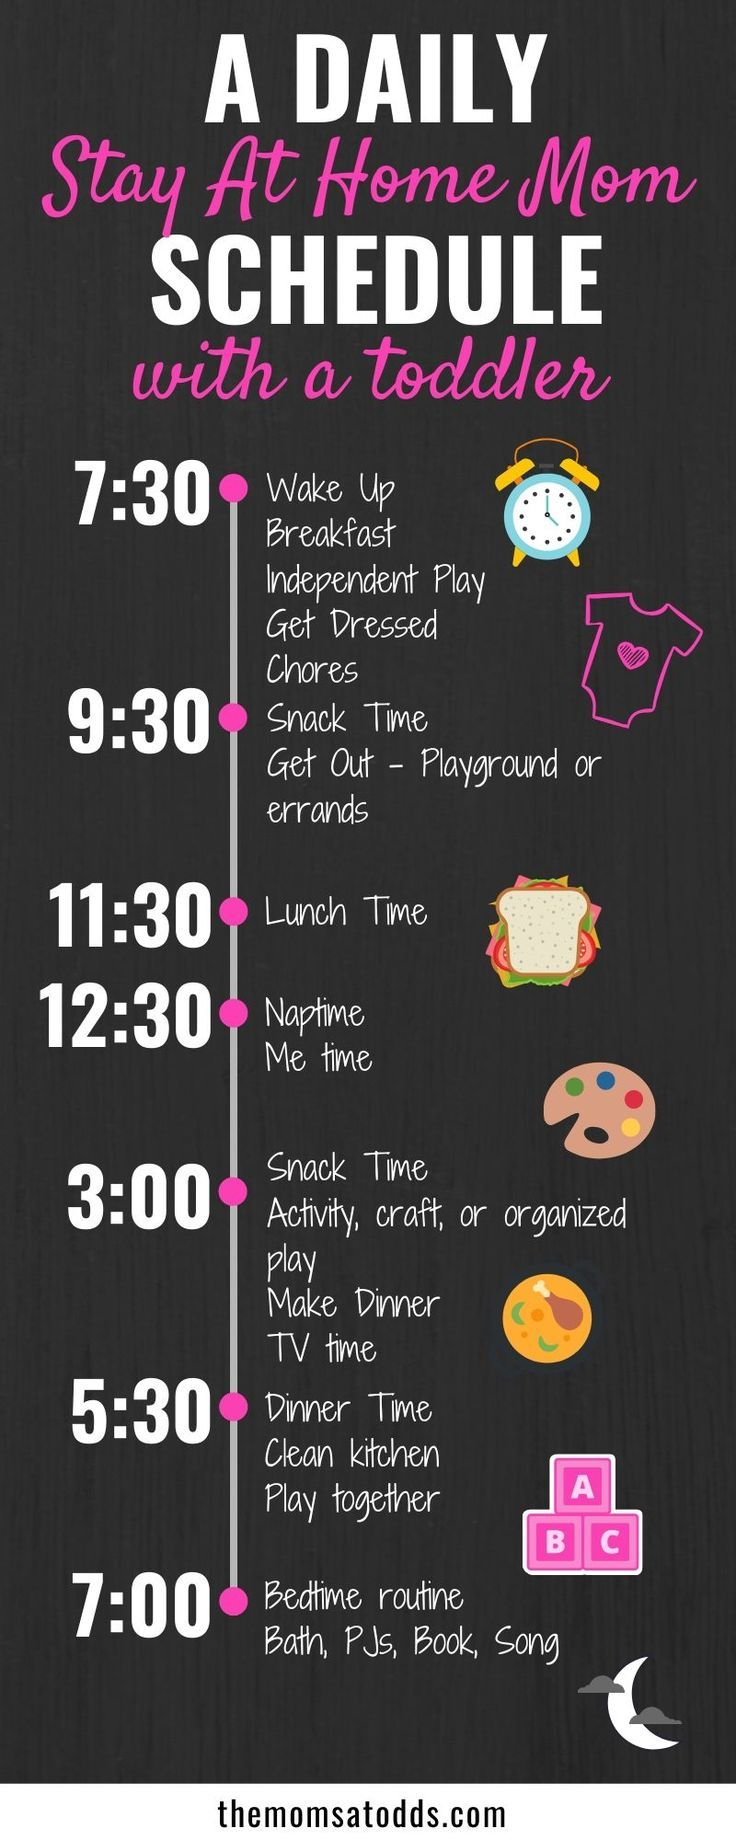 How To Make The Perfect Stay At Home Mom Schedule (With Example)